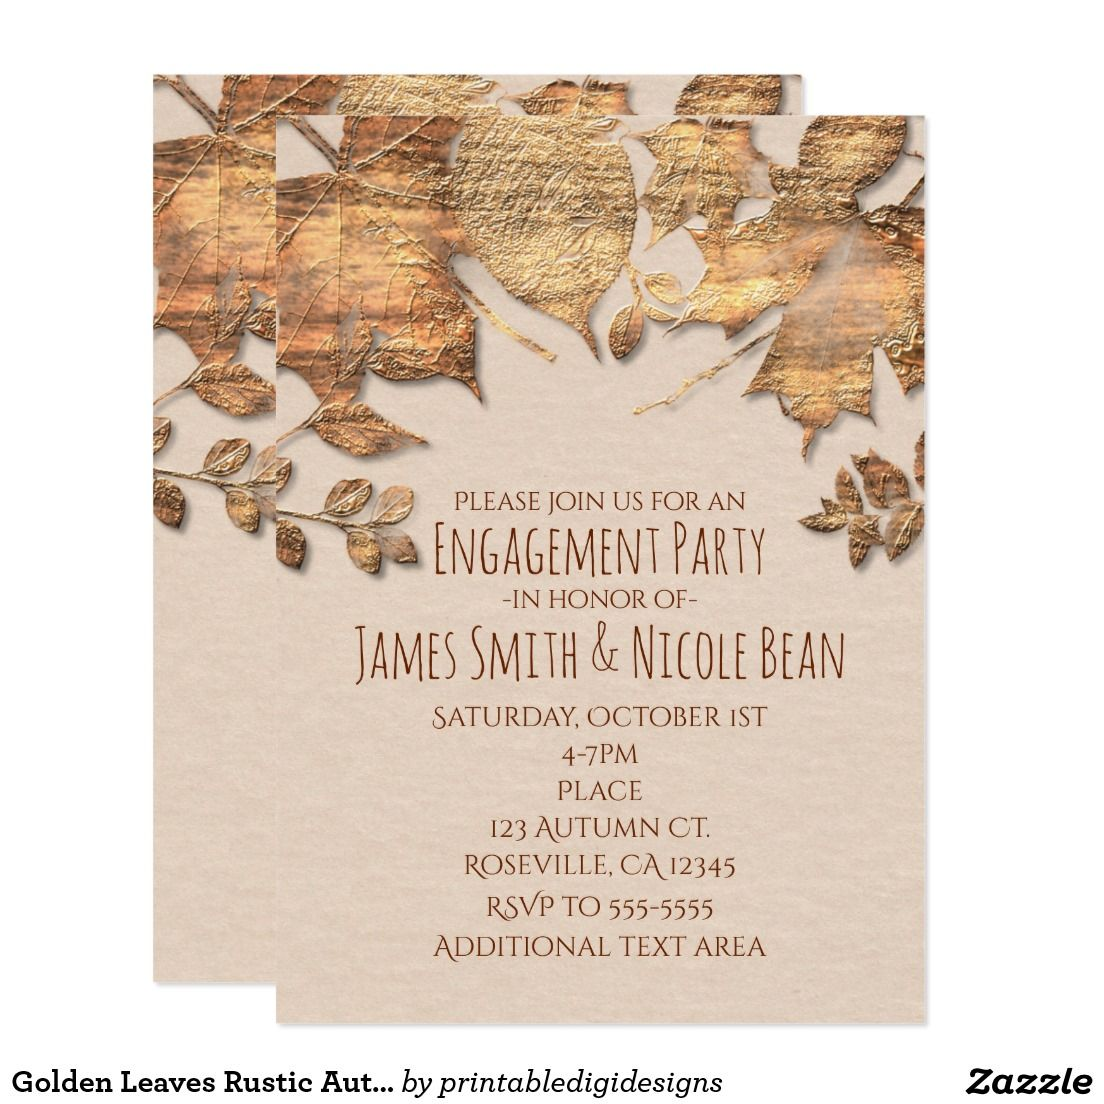 Golden Leaves Rustic Autumn Wedding Invitation | Rustic Country ...